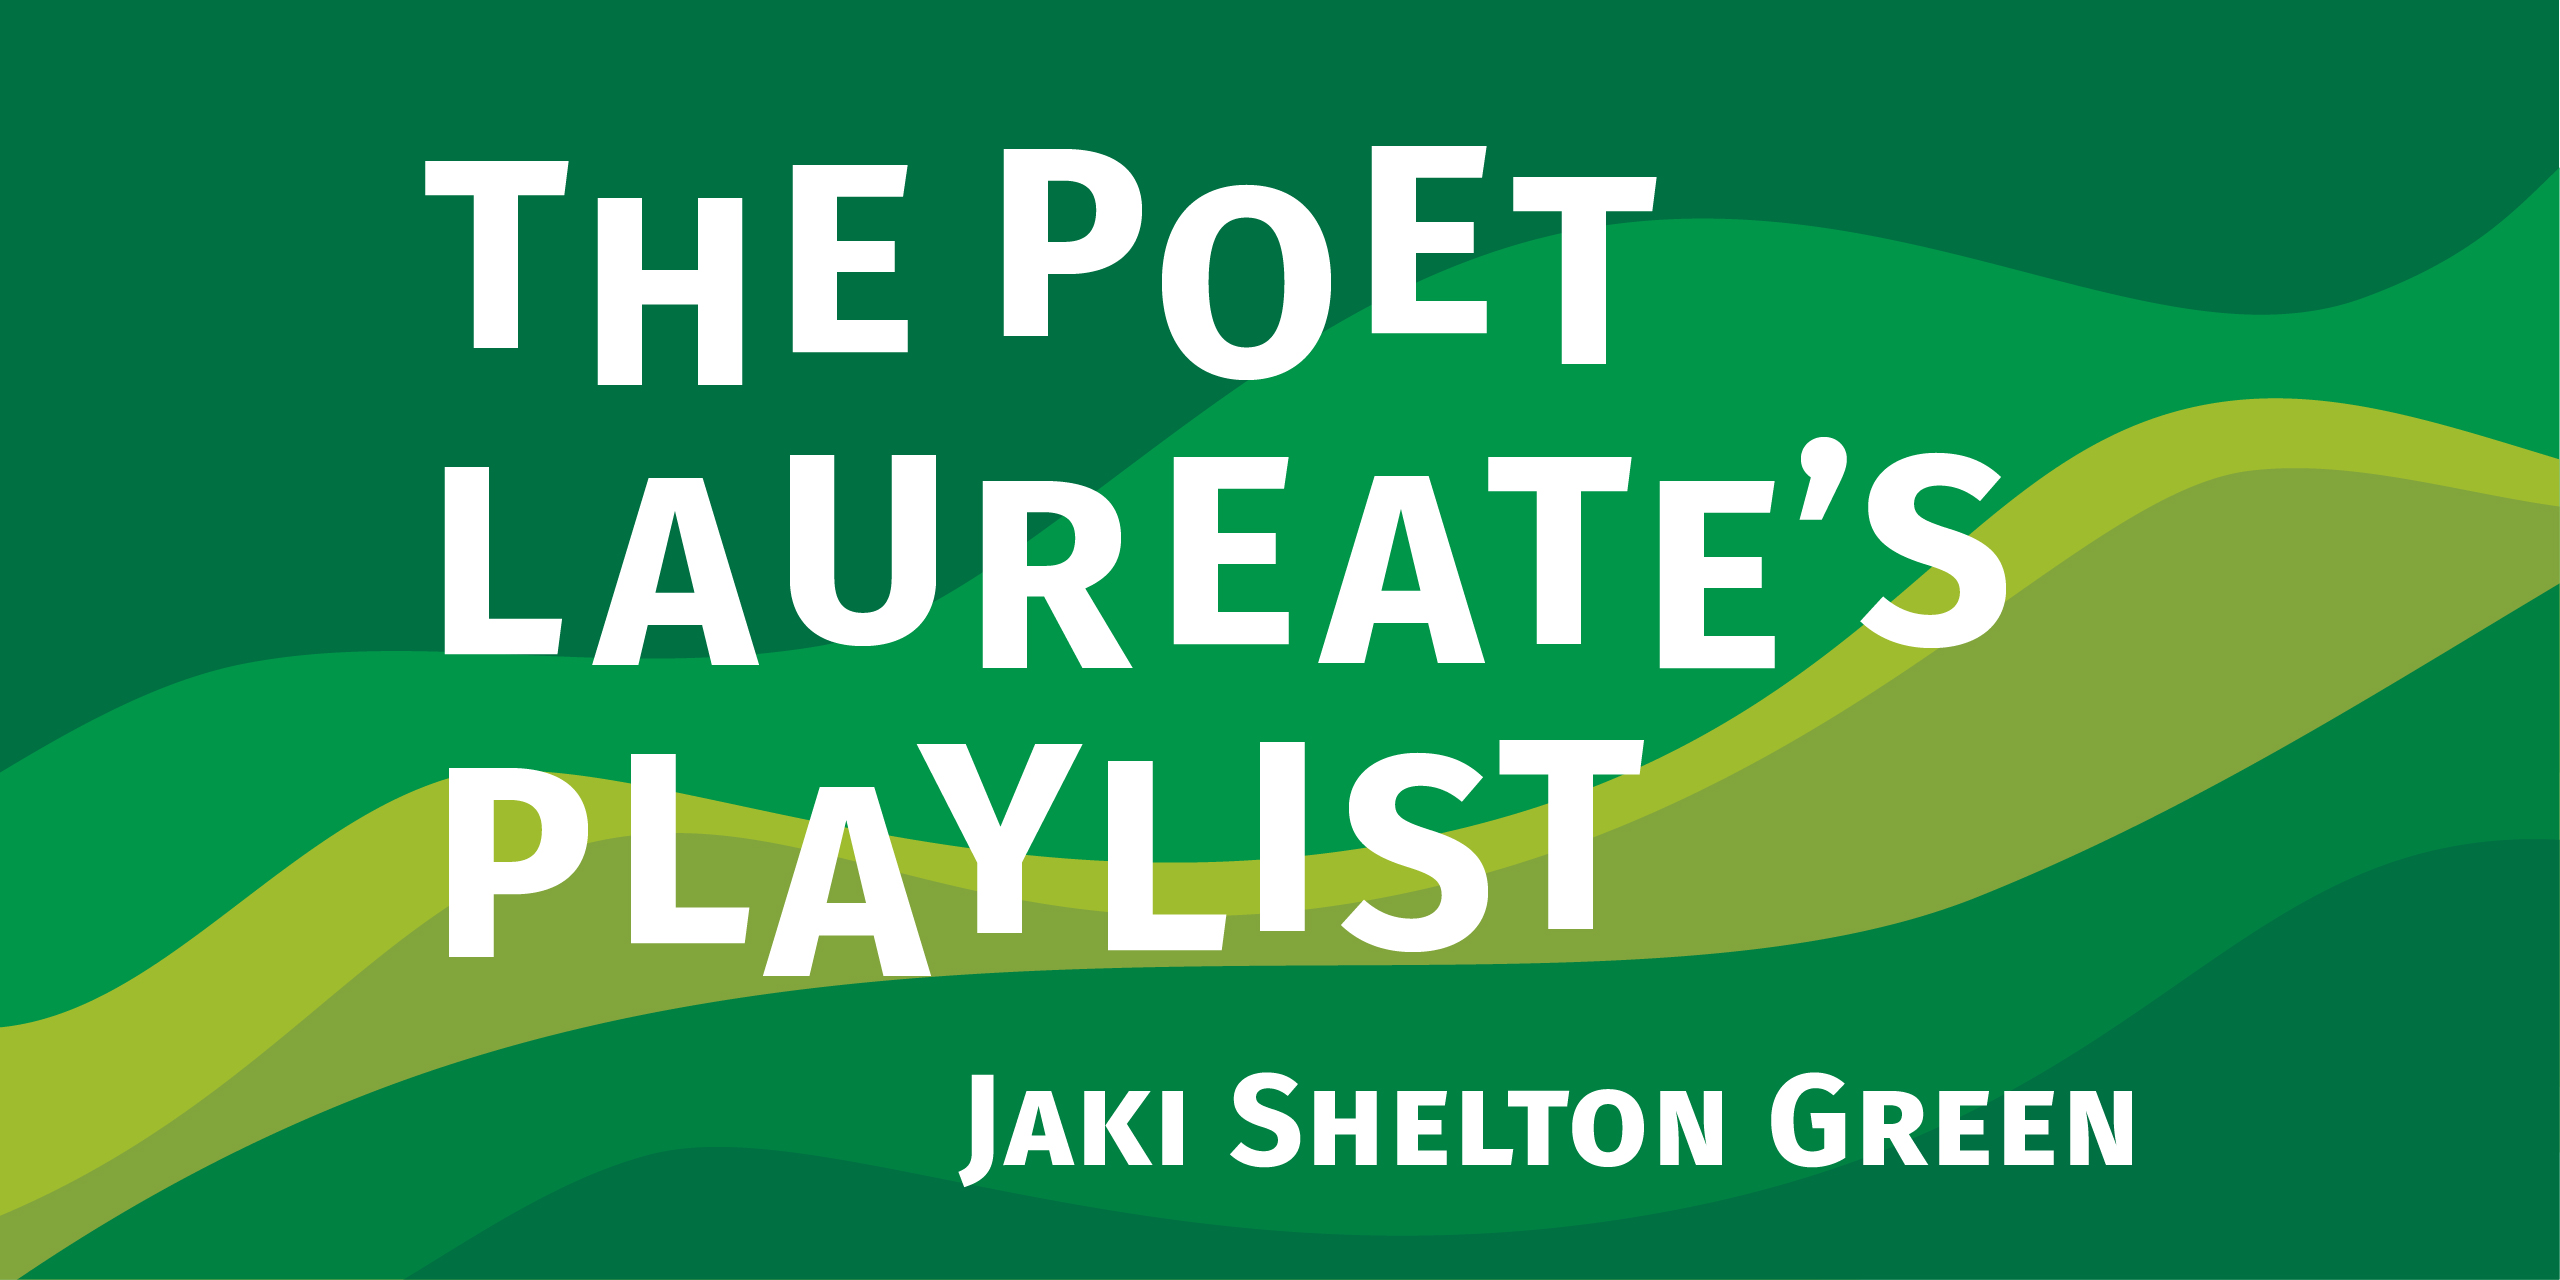 The Poet Laureate Playlist